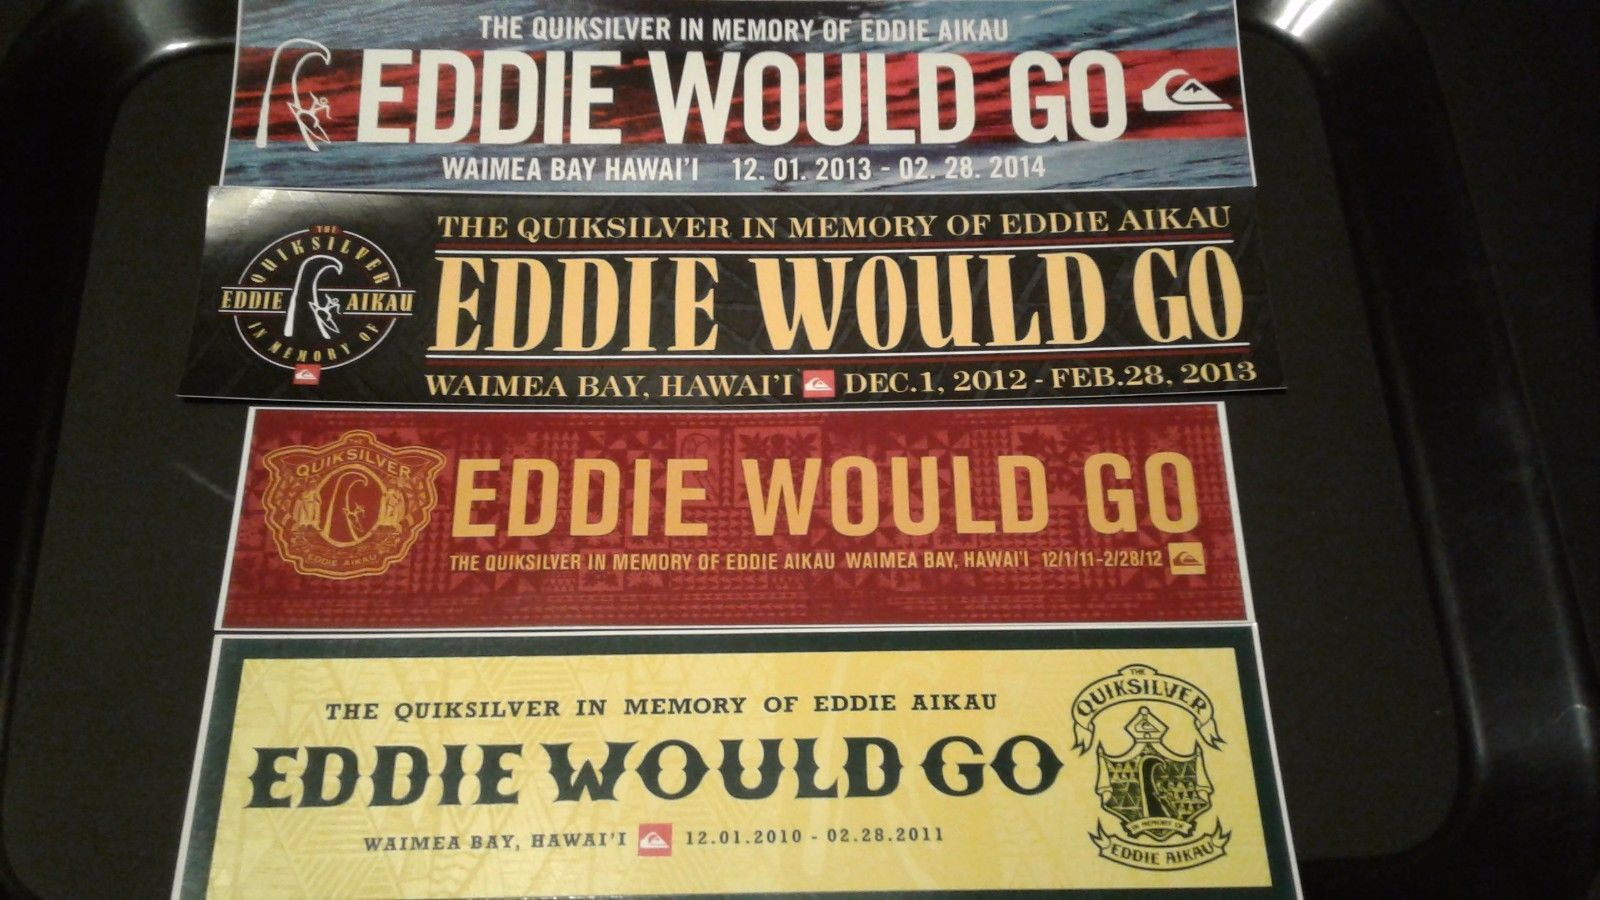 Decals Patches and Stickers 22711: Eddie Would Go Bumper Stickers -> BUY IT NOW ONLY: $30 on eBay!